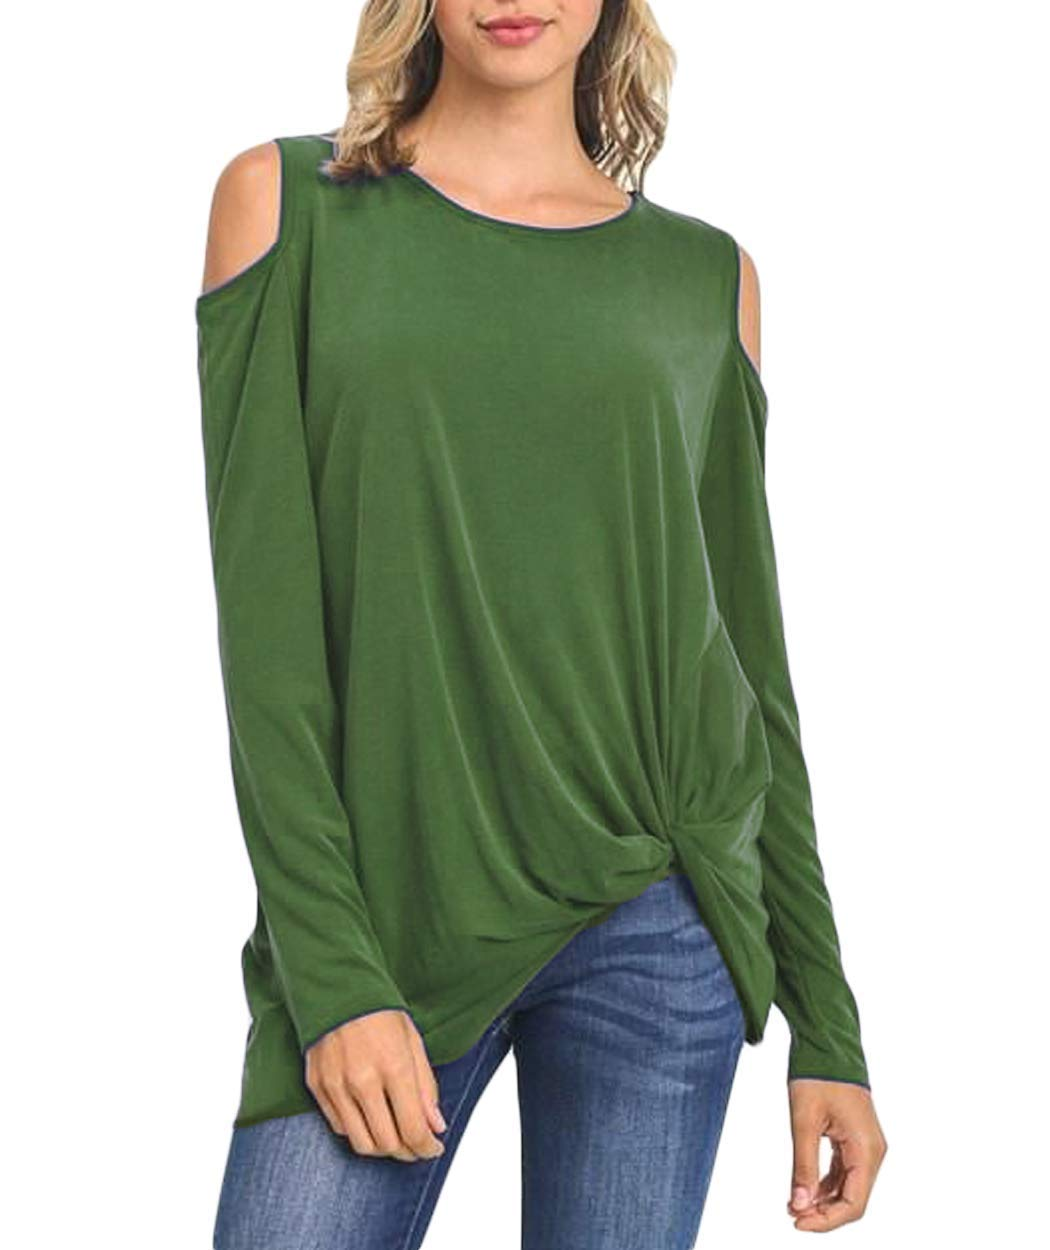 Eanklosco Women's Off Shoulder Tops Cold Shoulder T Shirts Cut Out Blouses Knot Front Long Sleeve Army Green S/UK 8